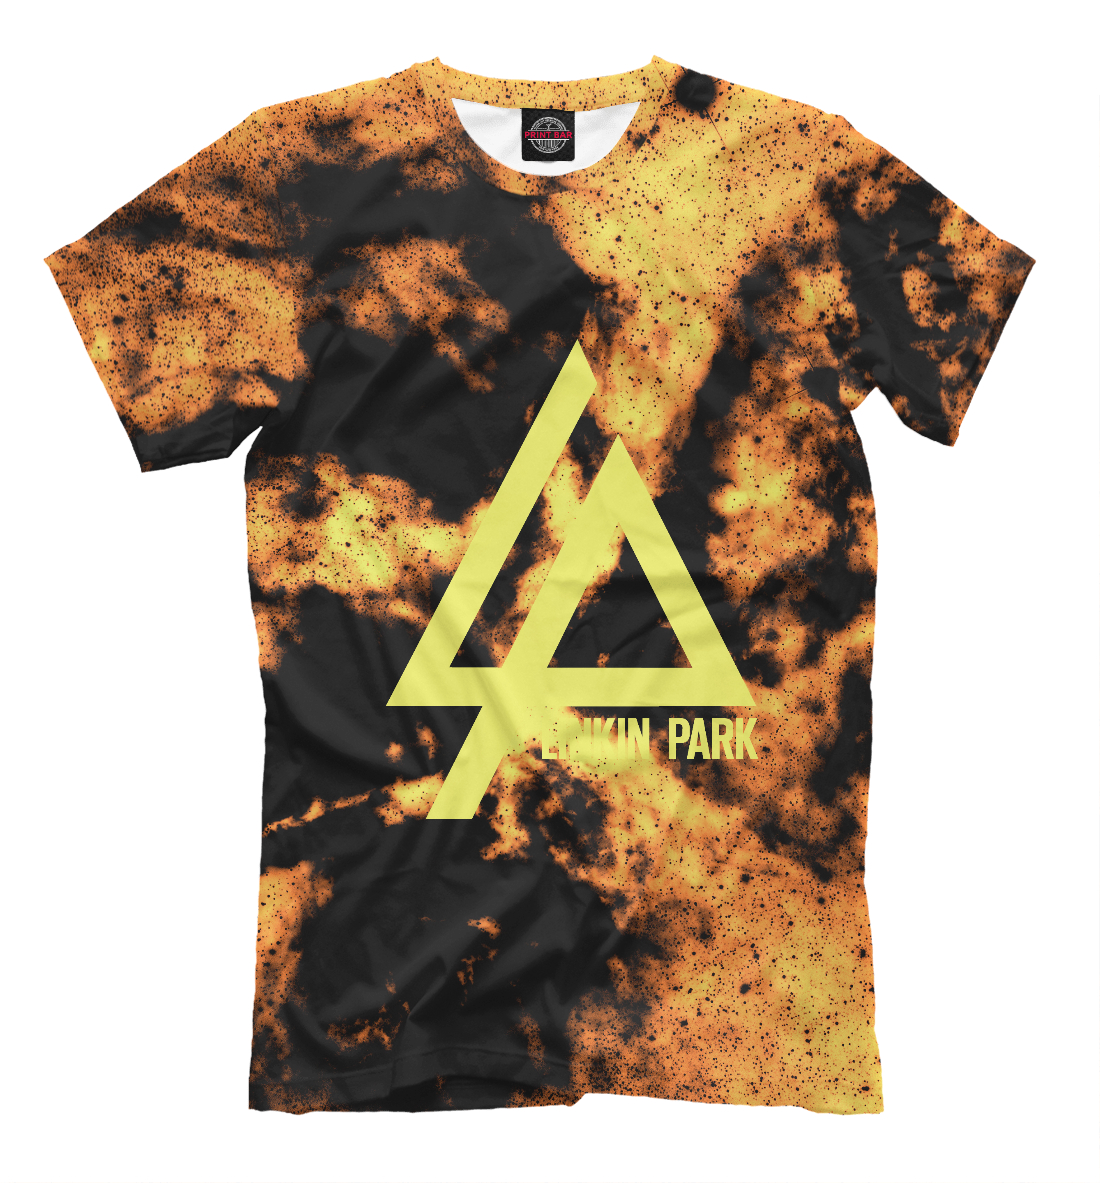 Купить Linkin Park Orange&Black collection, Printbar, Футболки, LIN-519169-fut-2